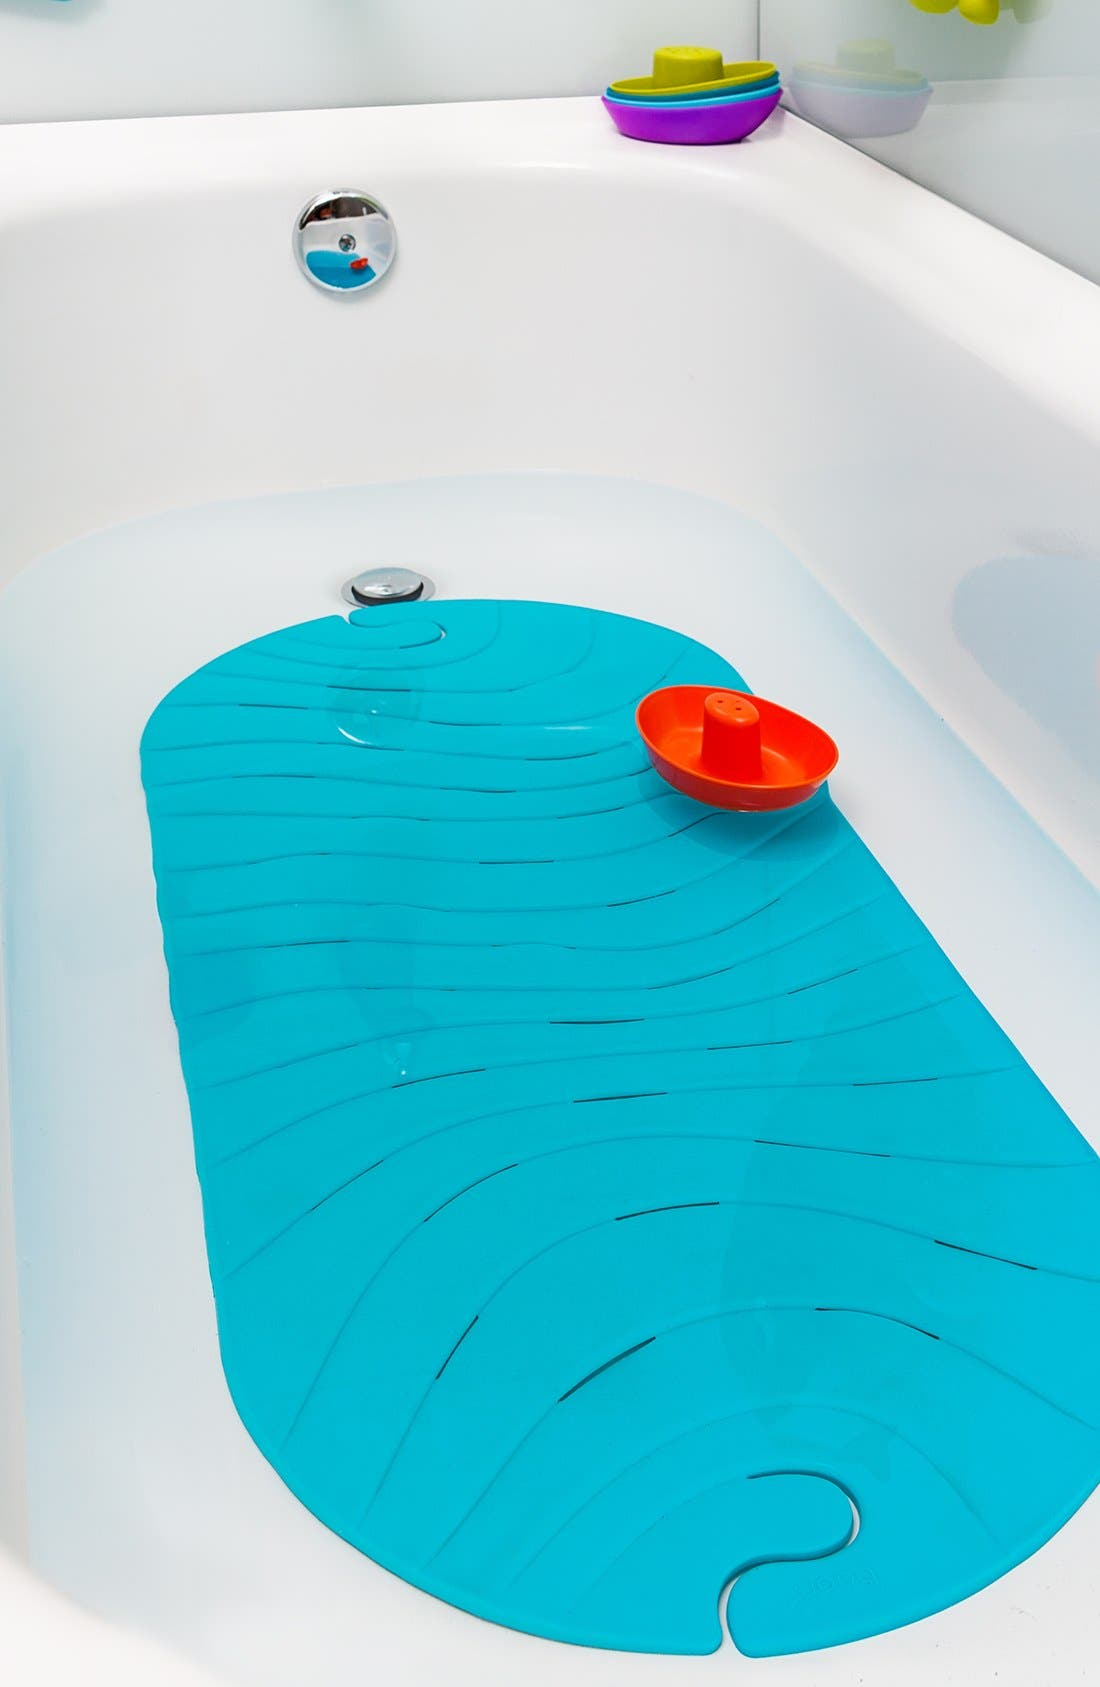 'Ripple' Bathtub Mat,                             Alternate thumbnail 4, color,                             BLUE